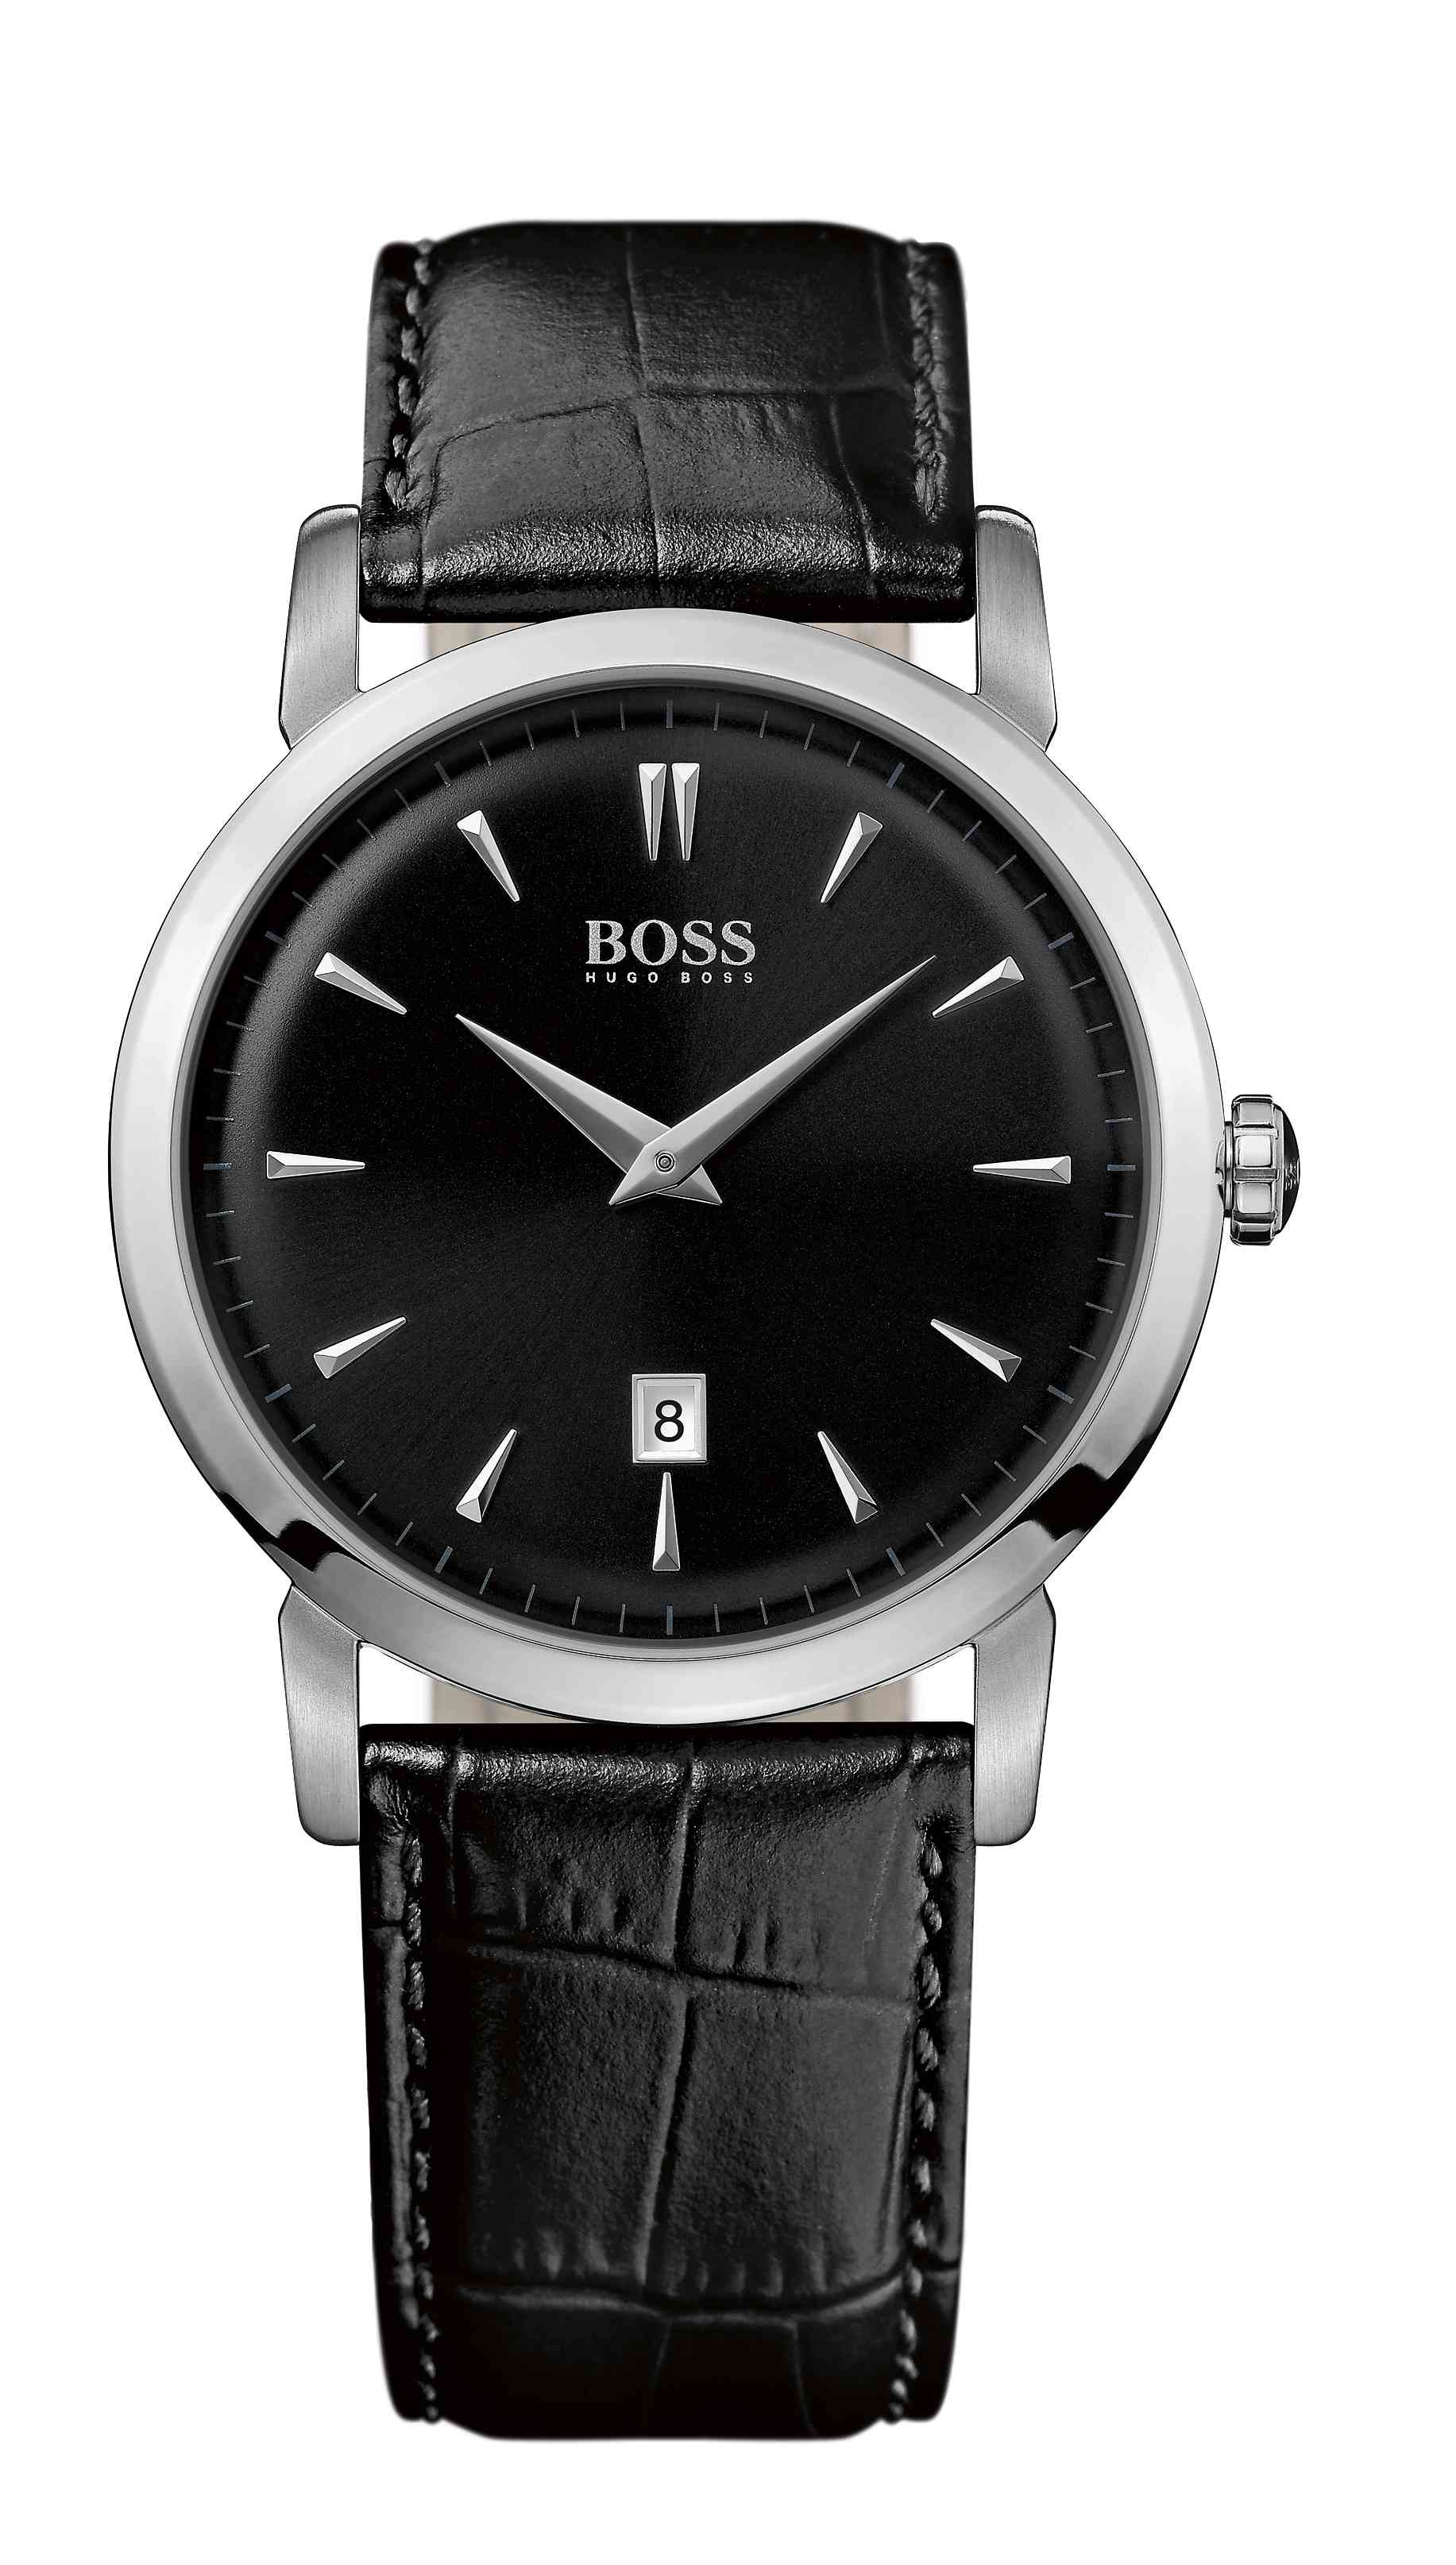 Boss Gentlemans Watch - www.gentlemansbutler.com